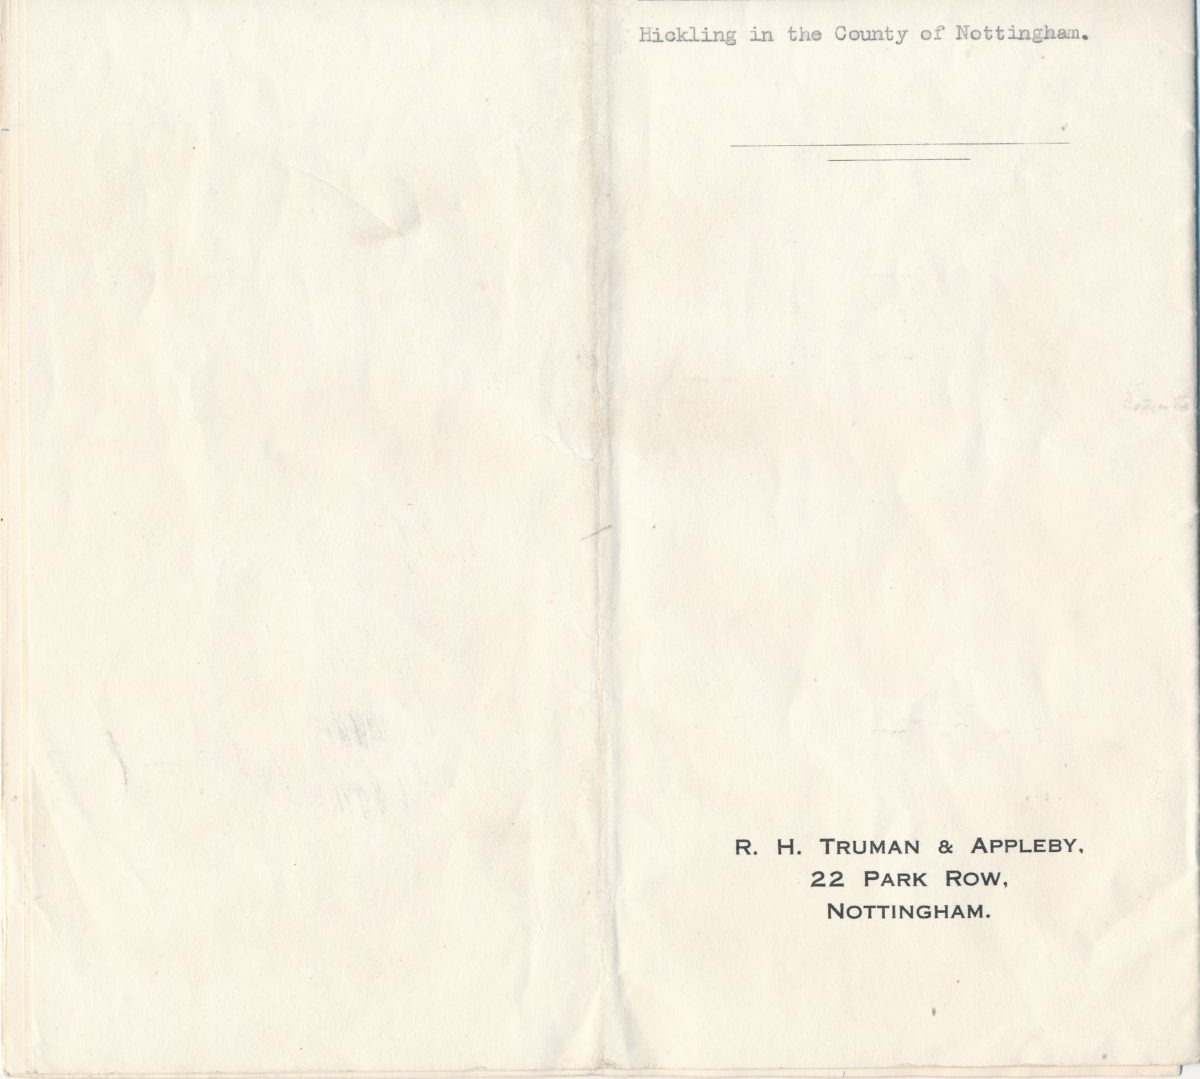 Hodson's Yard: 1960 abstract of title